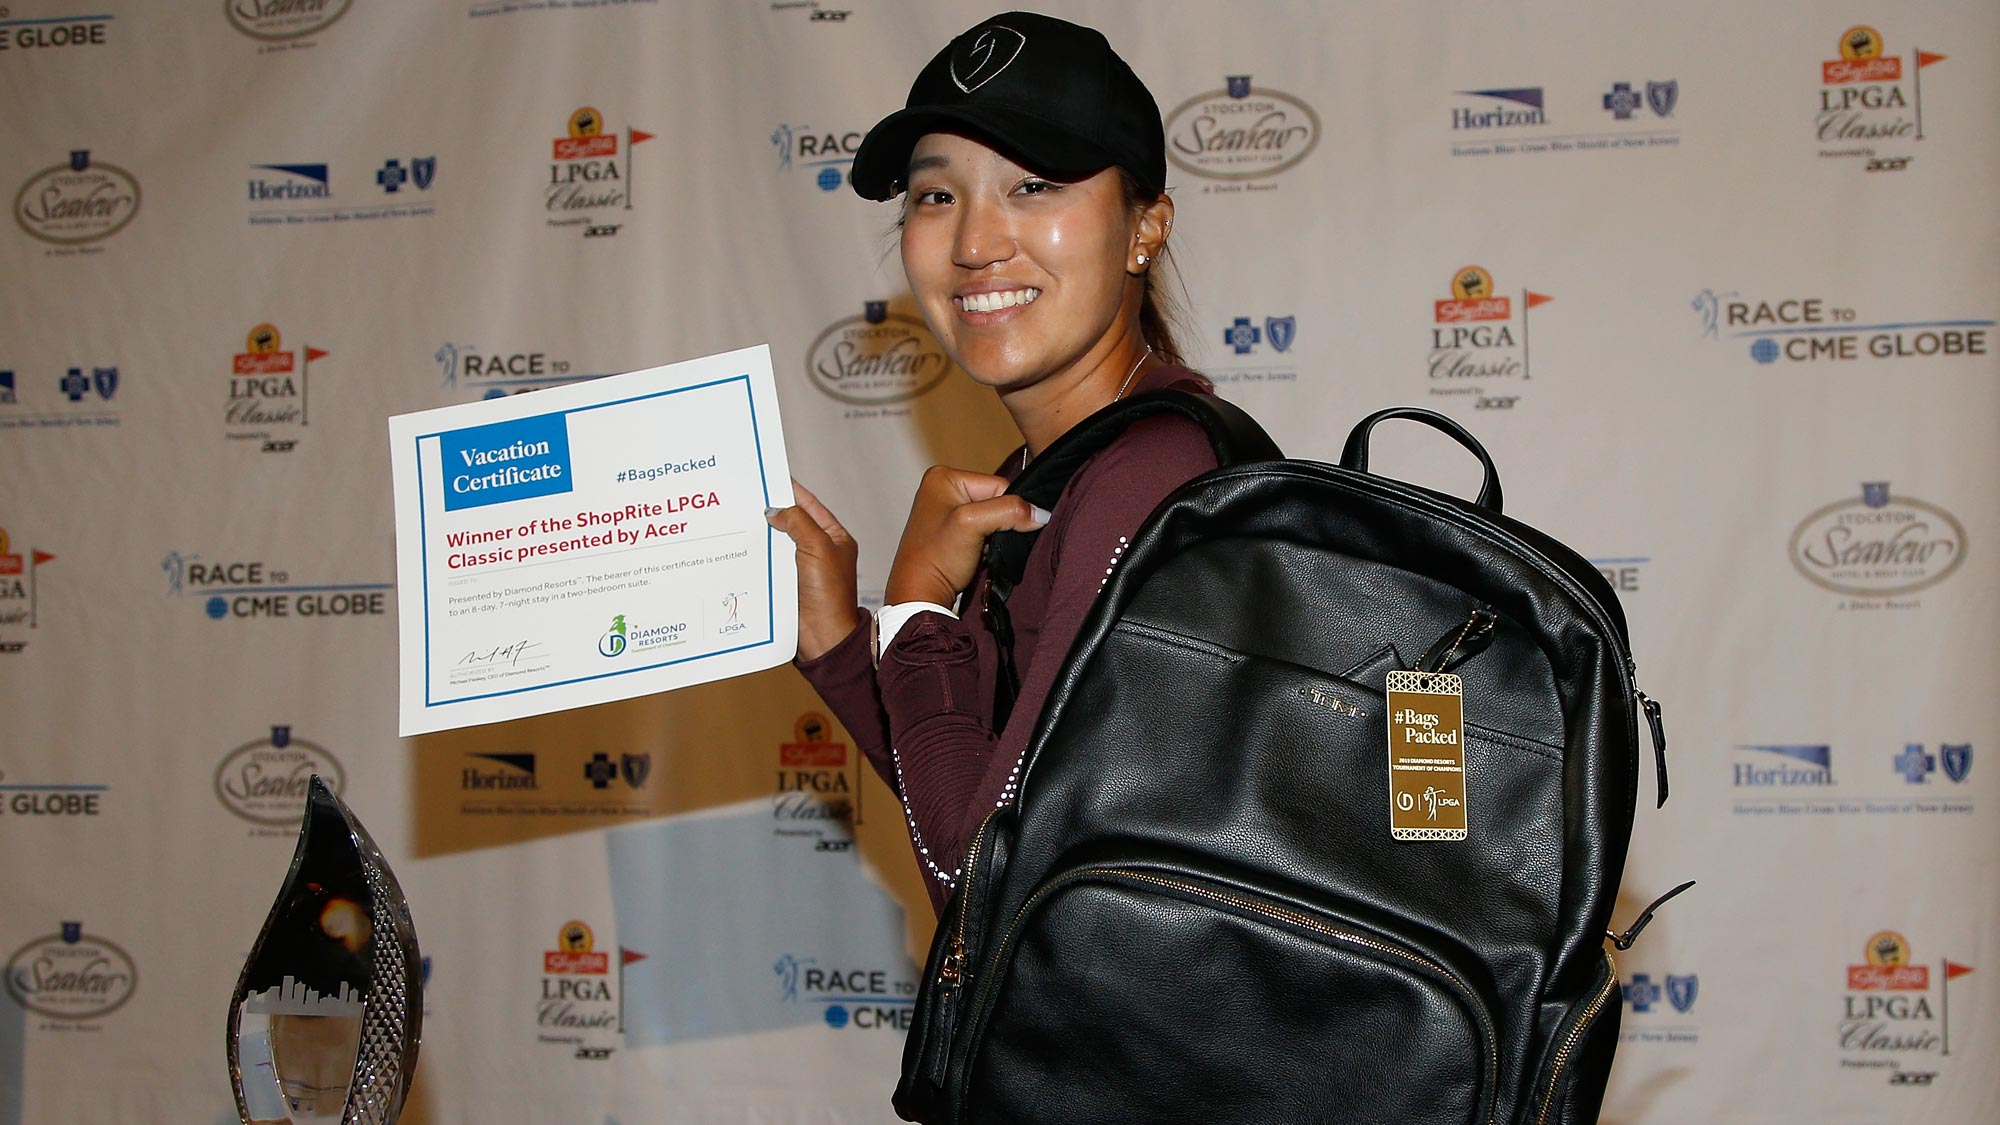 Annie Park has her #BagsPacked for the 2019 Diamond Resorts Tournament of Champions after her first career win at the ShopRite LPGA Classic presented by Acer